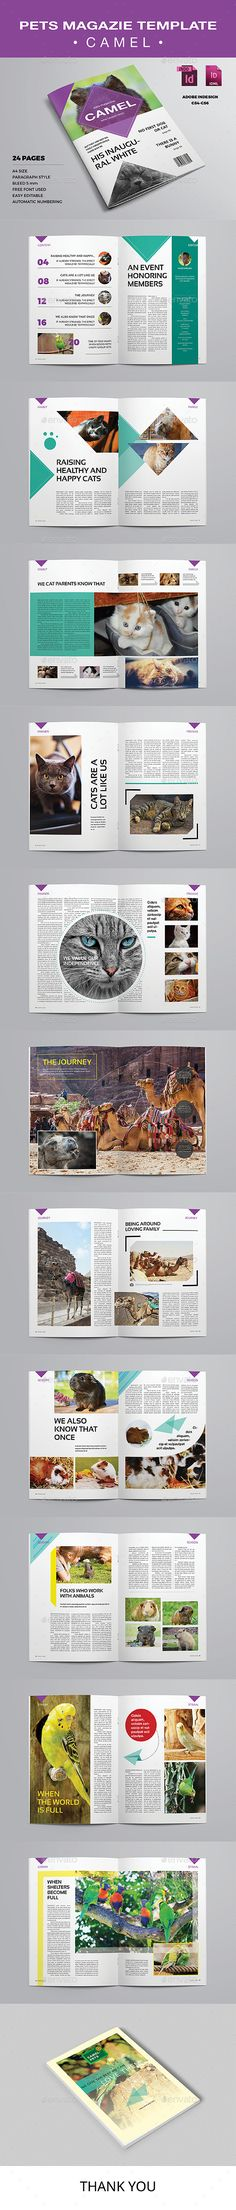 Pets Magazine Template InDesign INDD - 24 Pages A4